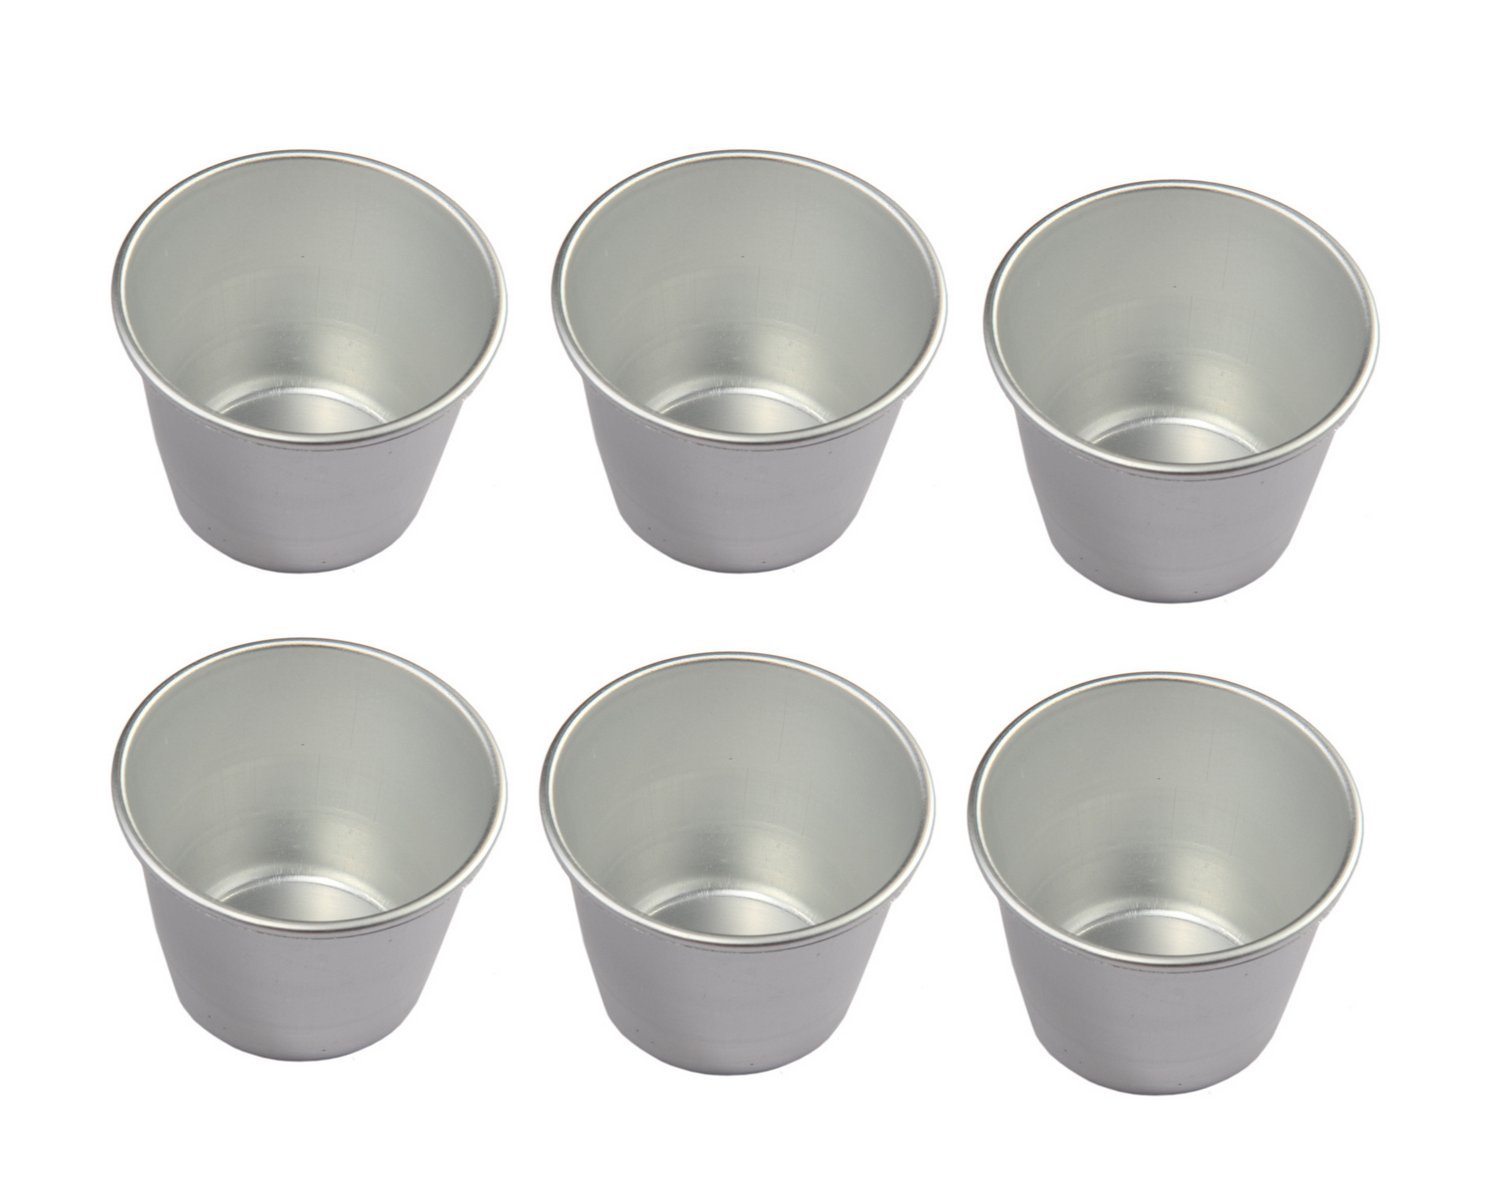 Astra shop Set of 6 Nonstick Individual Tumblers Popovers| Chocolate Molten Pans| Pudding Cups| Raspberry Souffle Pot| Darioles Ramekins Brownies Mold - Size 3 Inches by Astra shop (Image #1)